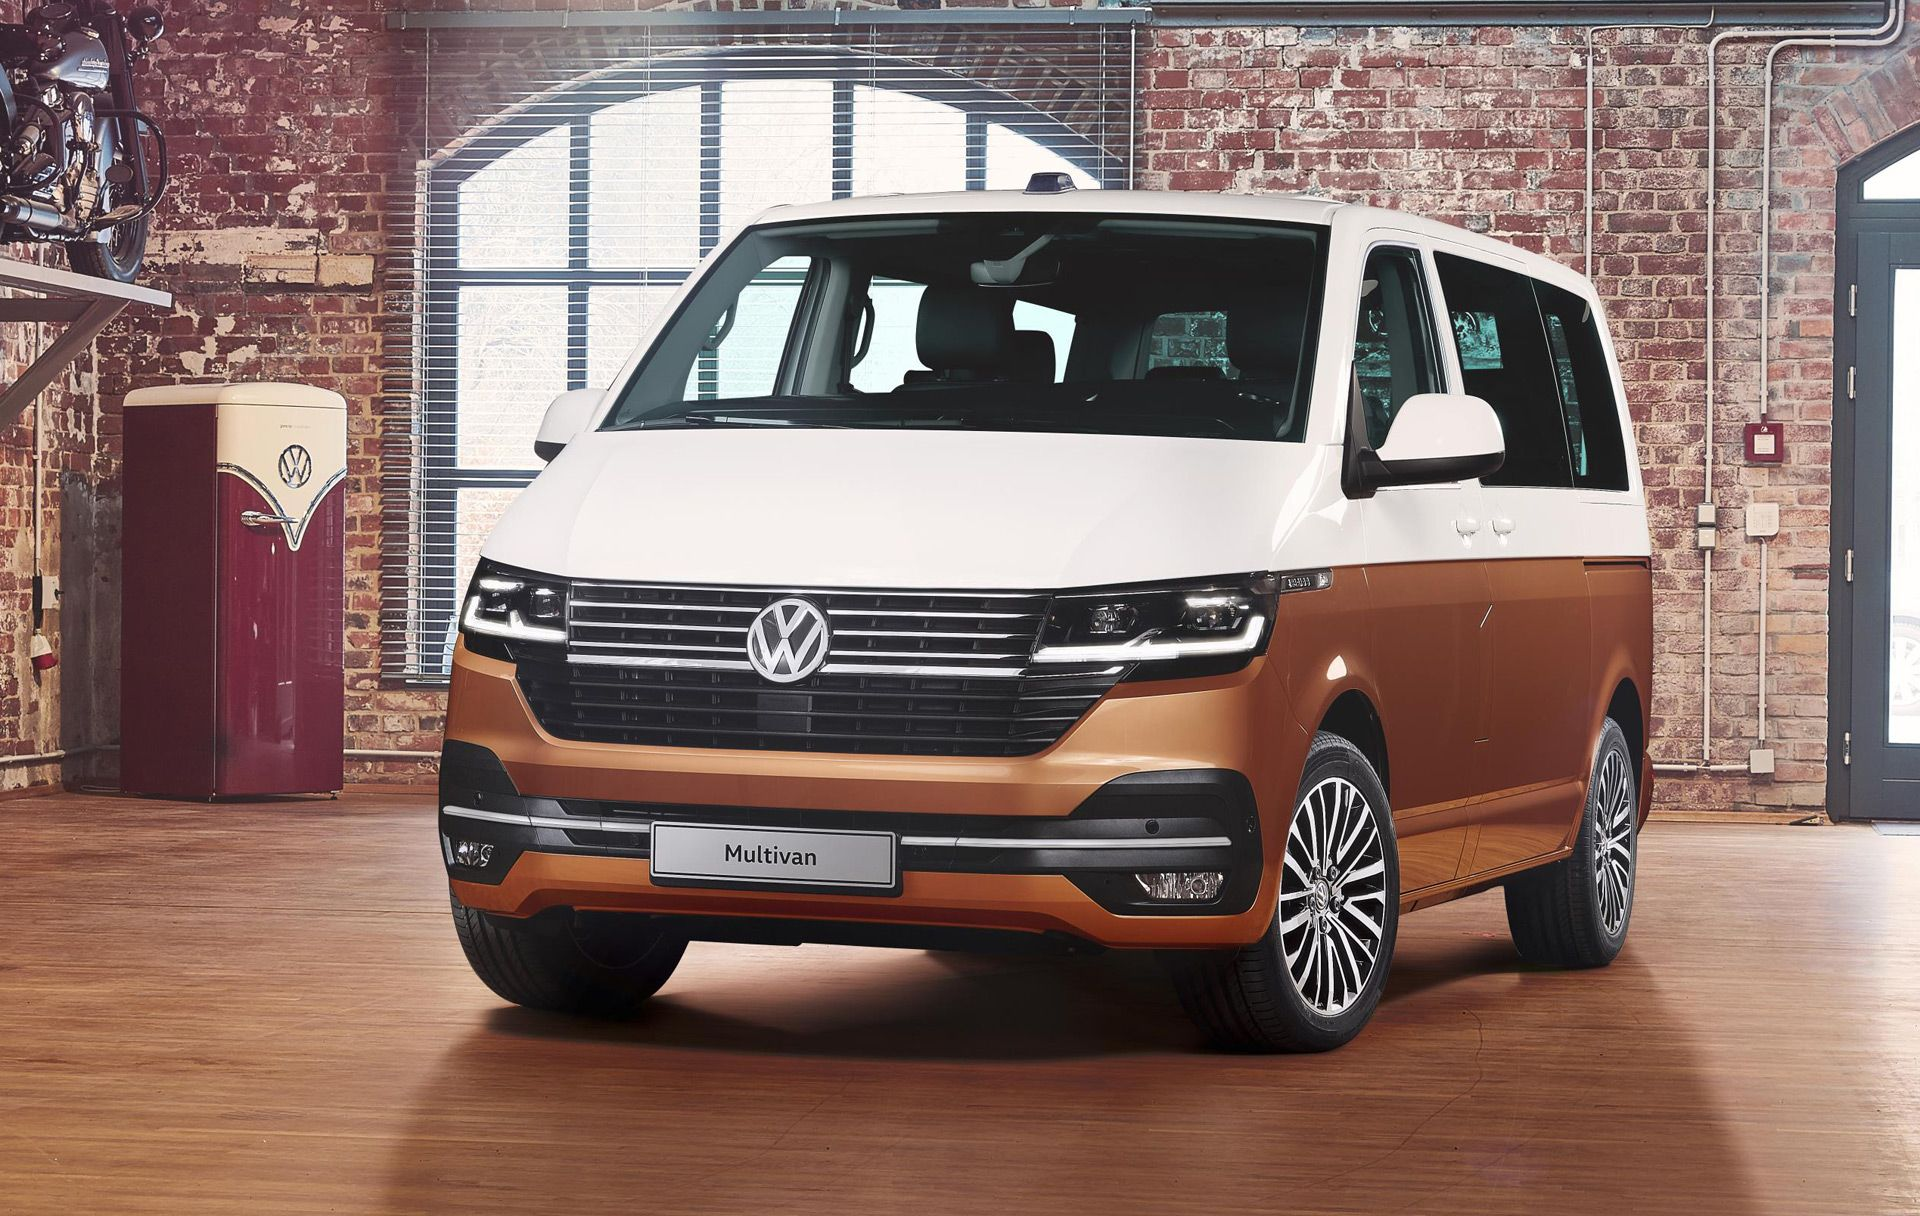 Review Volkswagen Is Working On A New Model That Will Be The